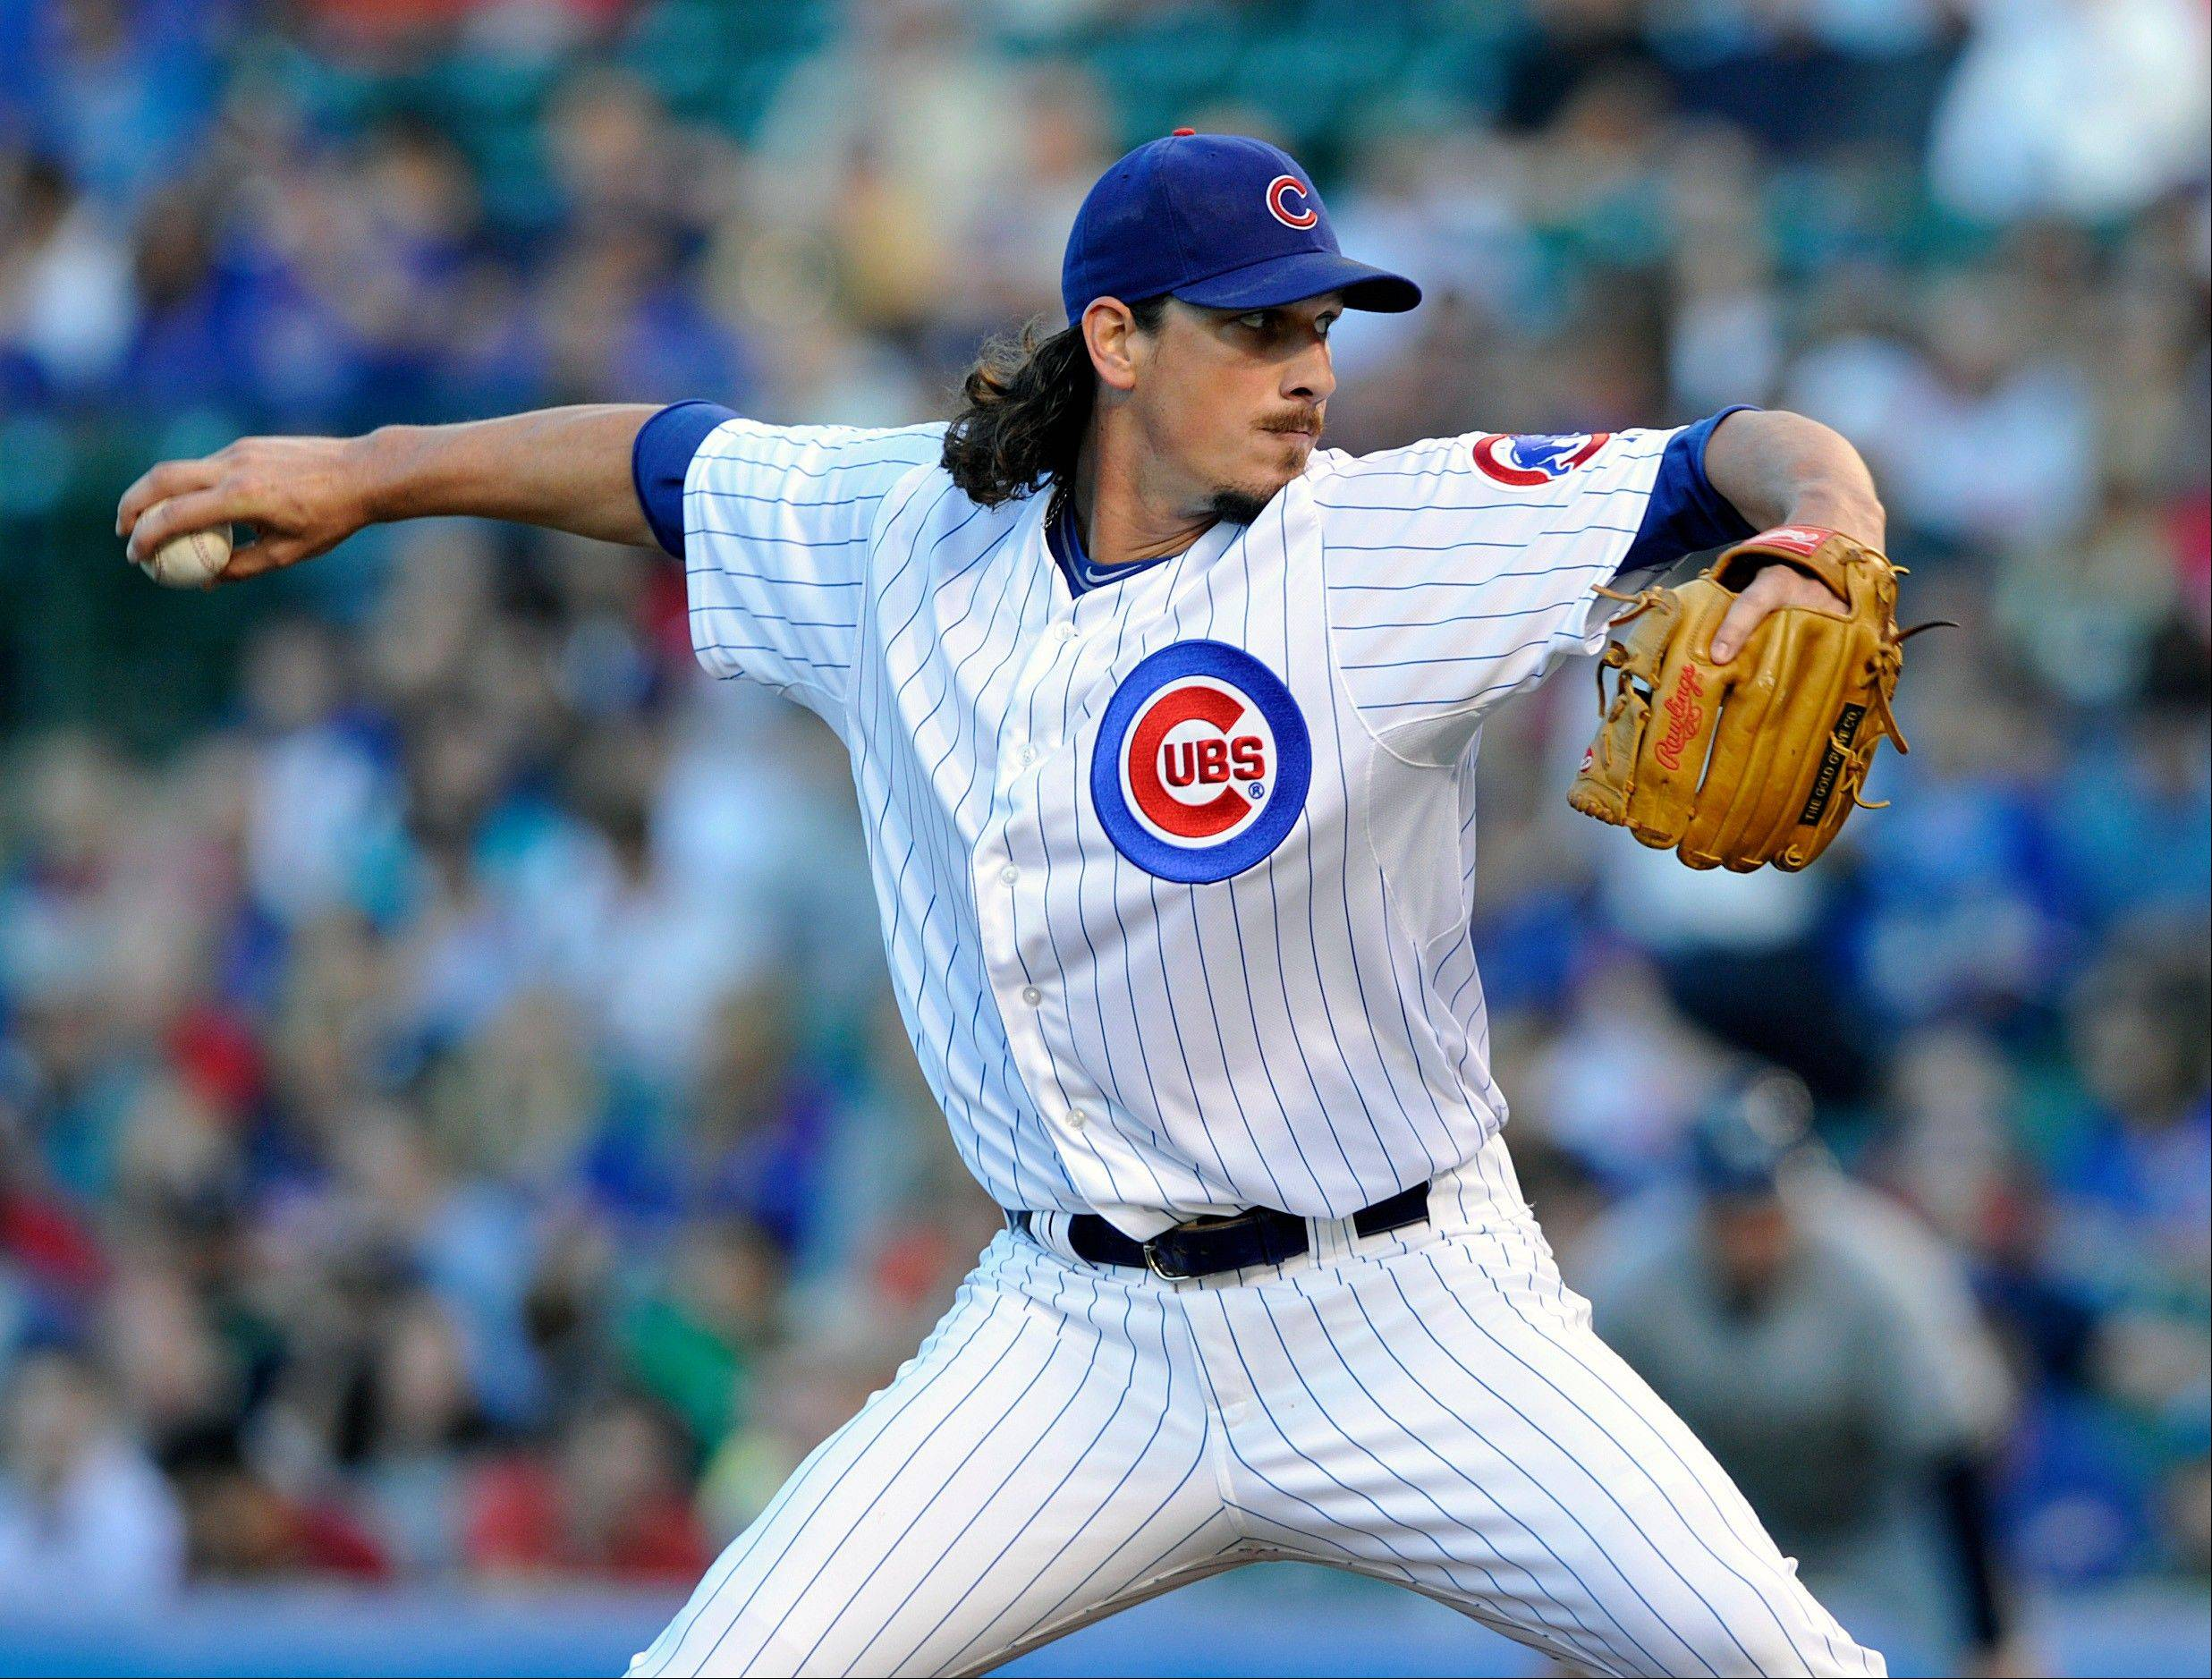 Cubs starting pitcher Jeff Samardzija, who worked 7 shutout innings in a no-decision Monday night against the Brewers, says he likes the makeup of this year�s team.